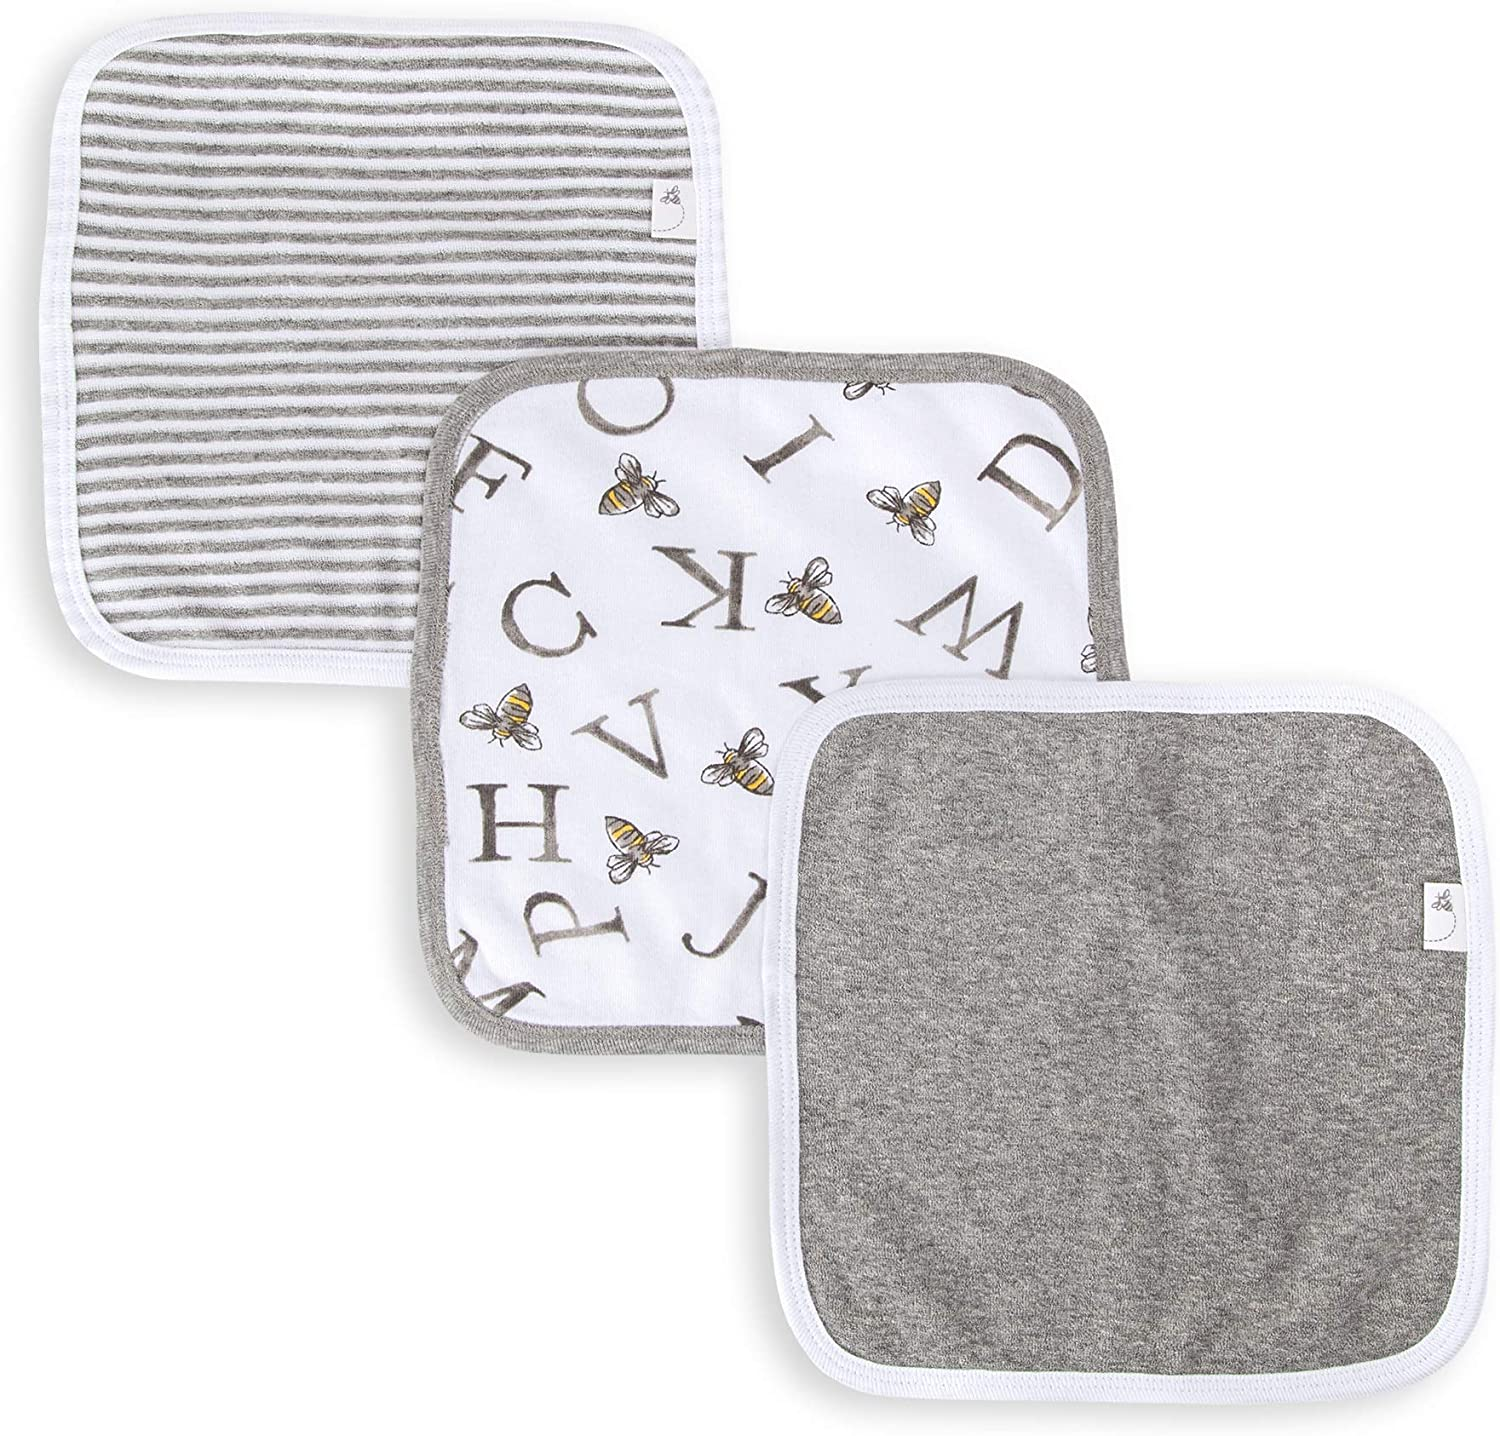 Super Soft 100/% Organic Cotton Washcloths Burts Bees Baby A-Bee-C, 3-Pack Absorbent Knit Terry